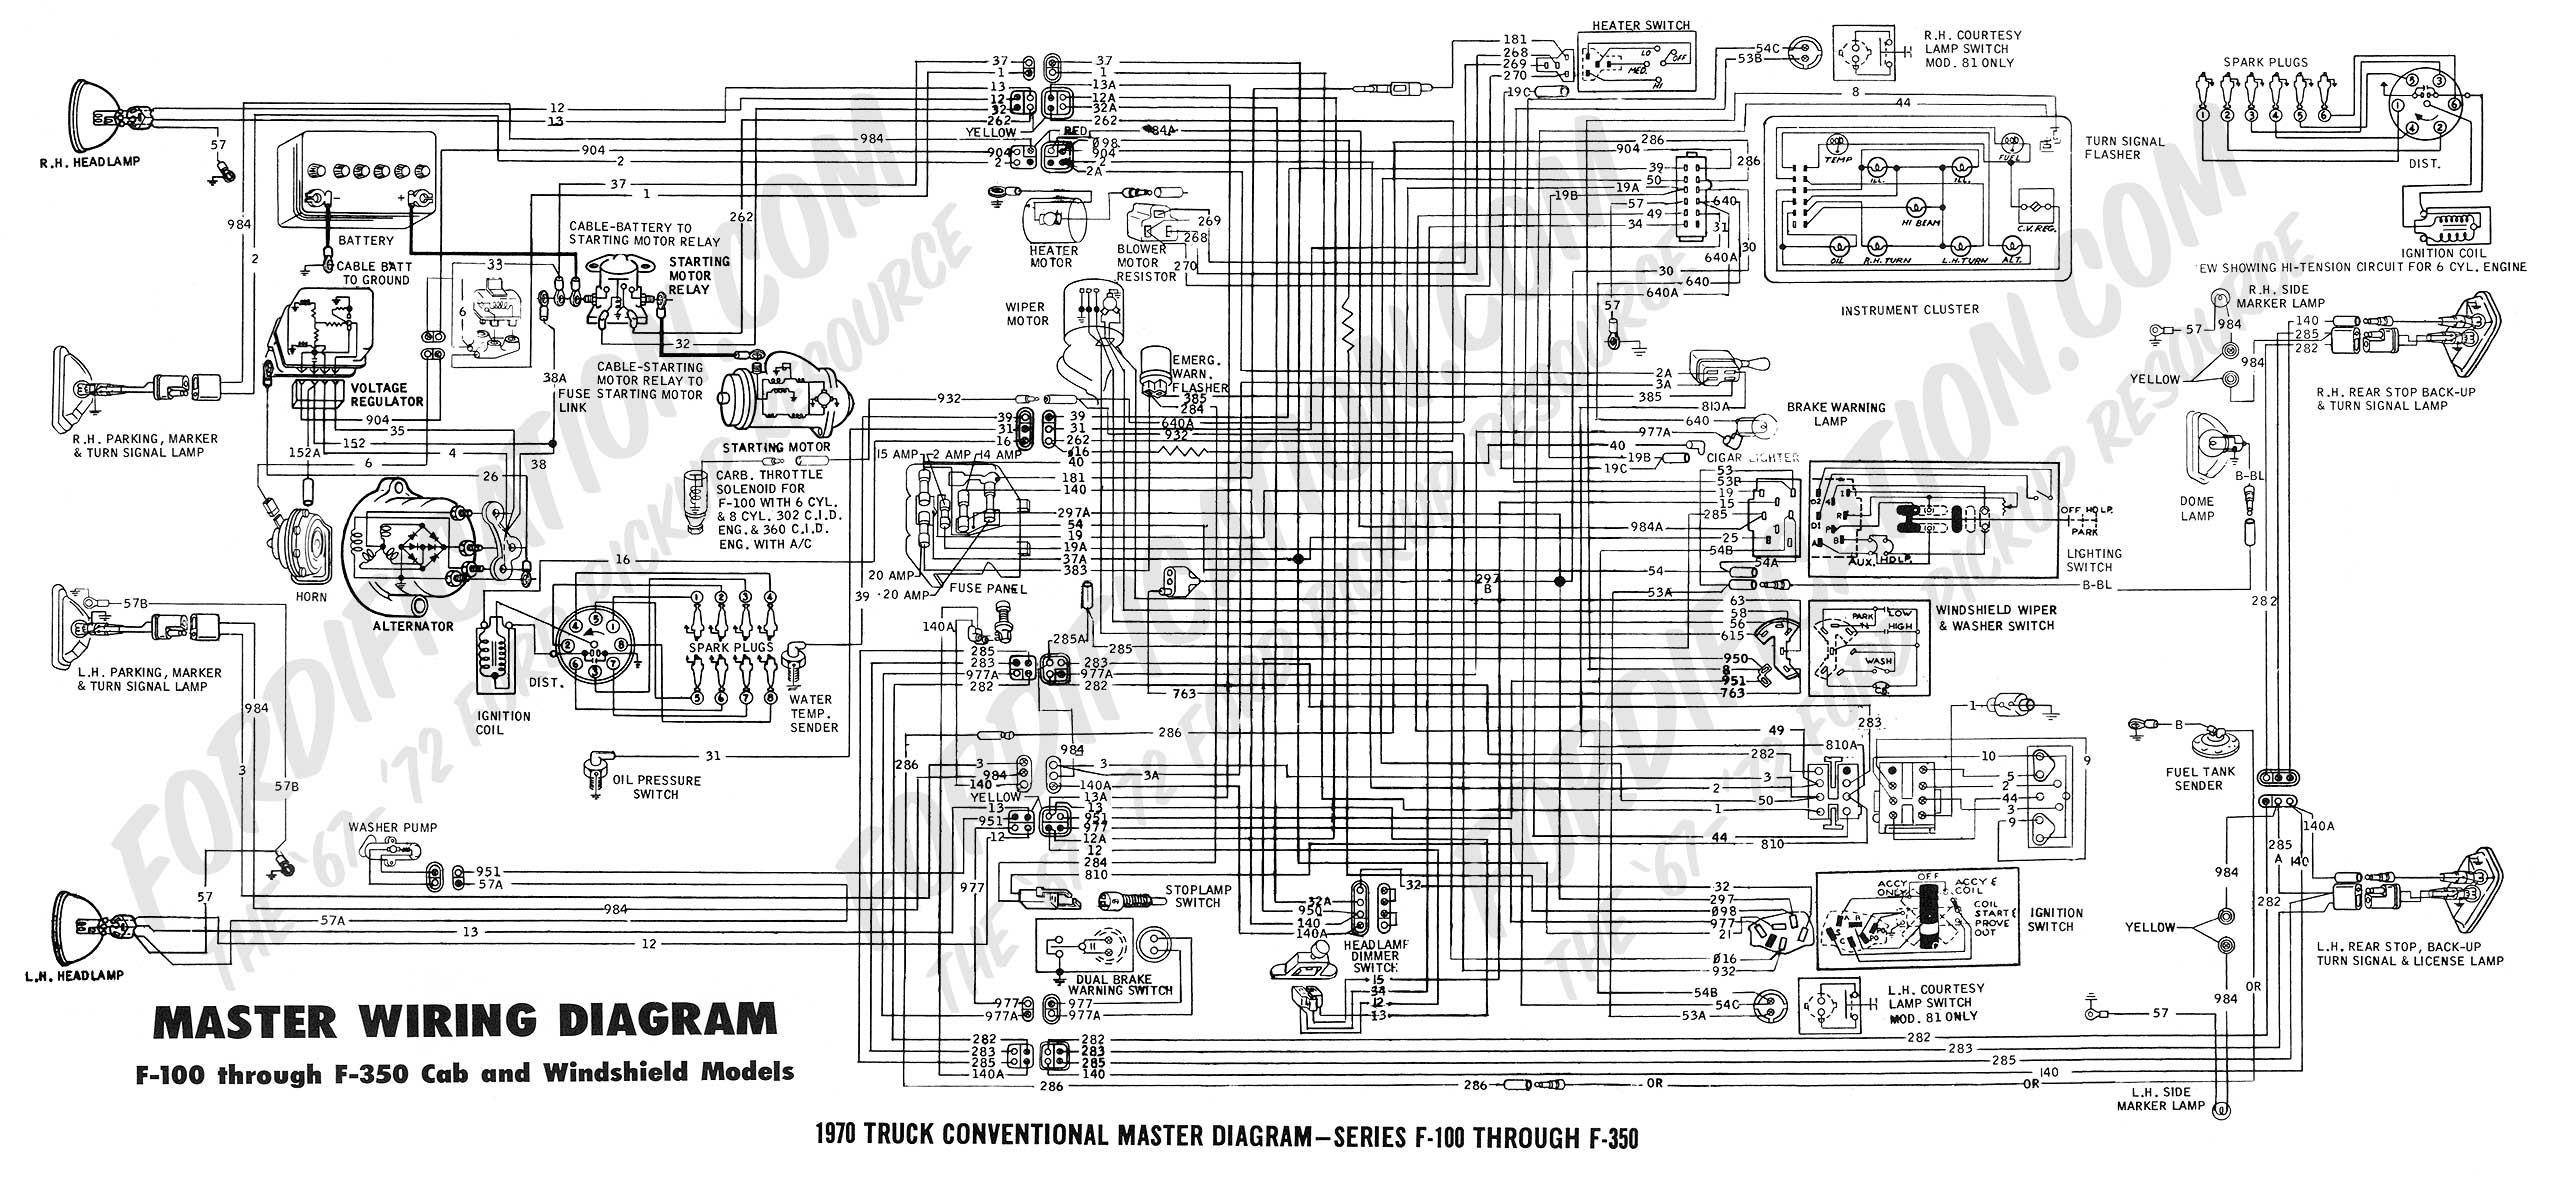 wiring diagram 70_master f450 wiring diagram f250 wiring diagram 2016 \u2022 wiring diagrams j 1990 ford truck wiring diagram at gsmx.co